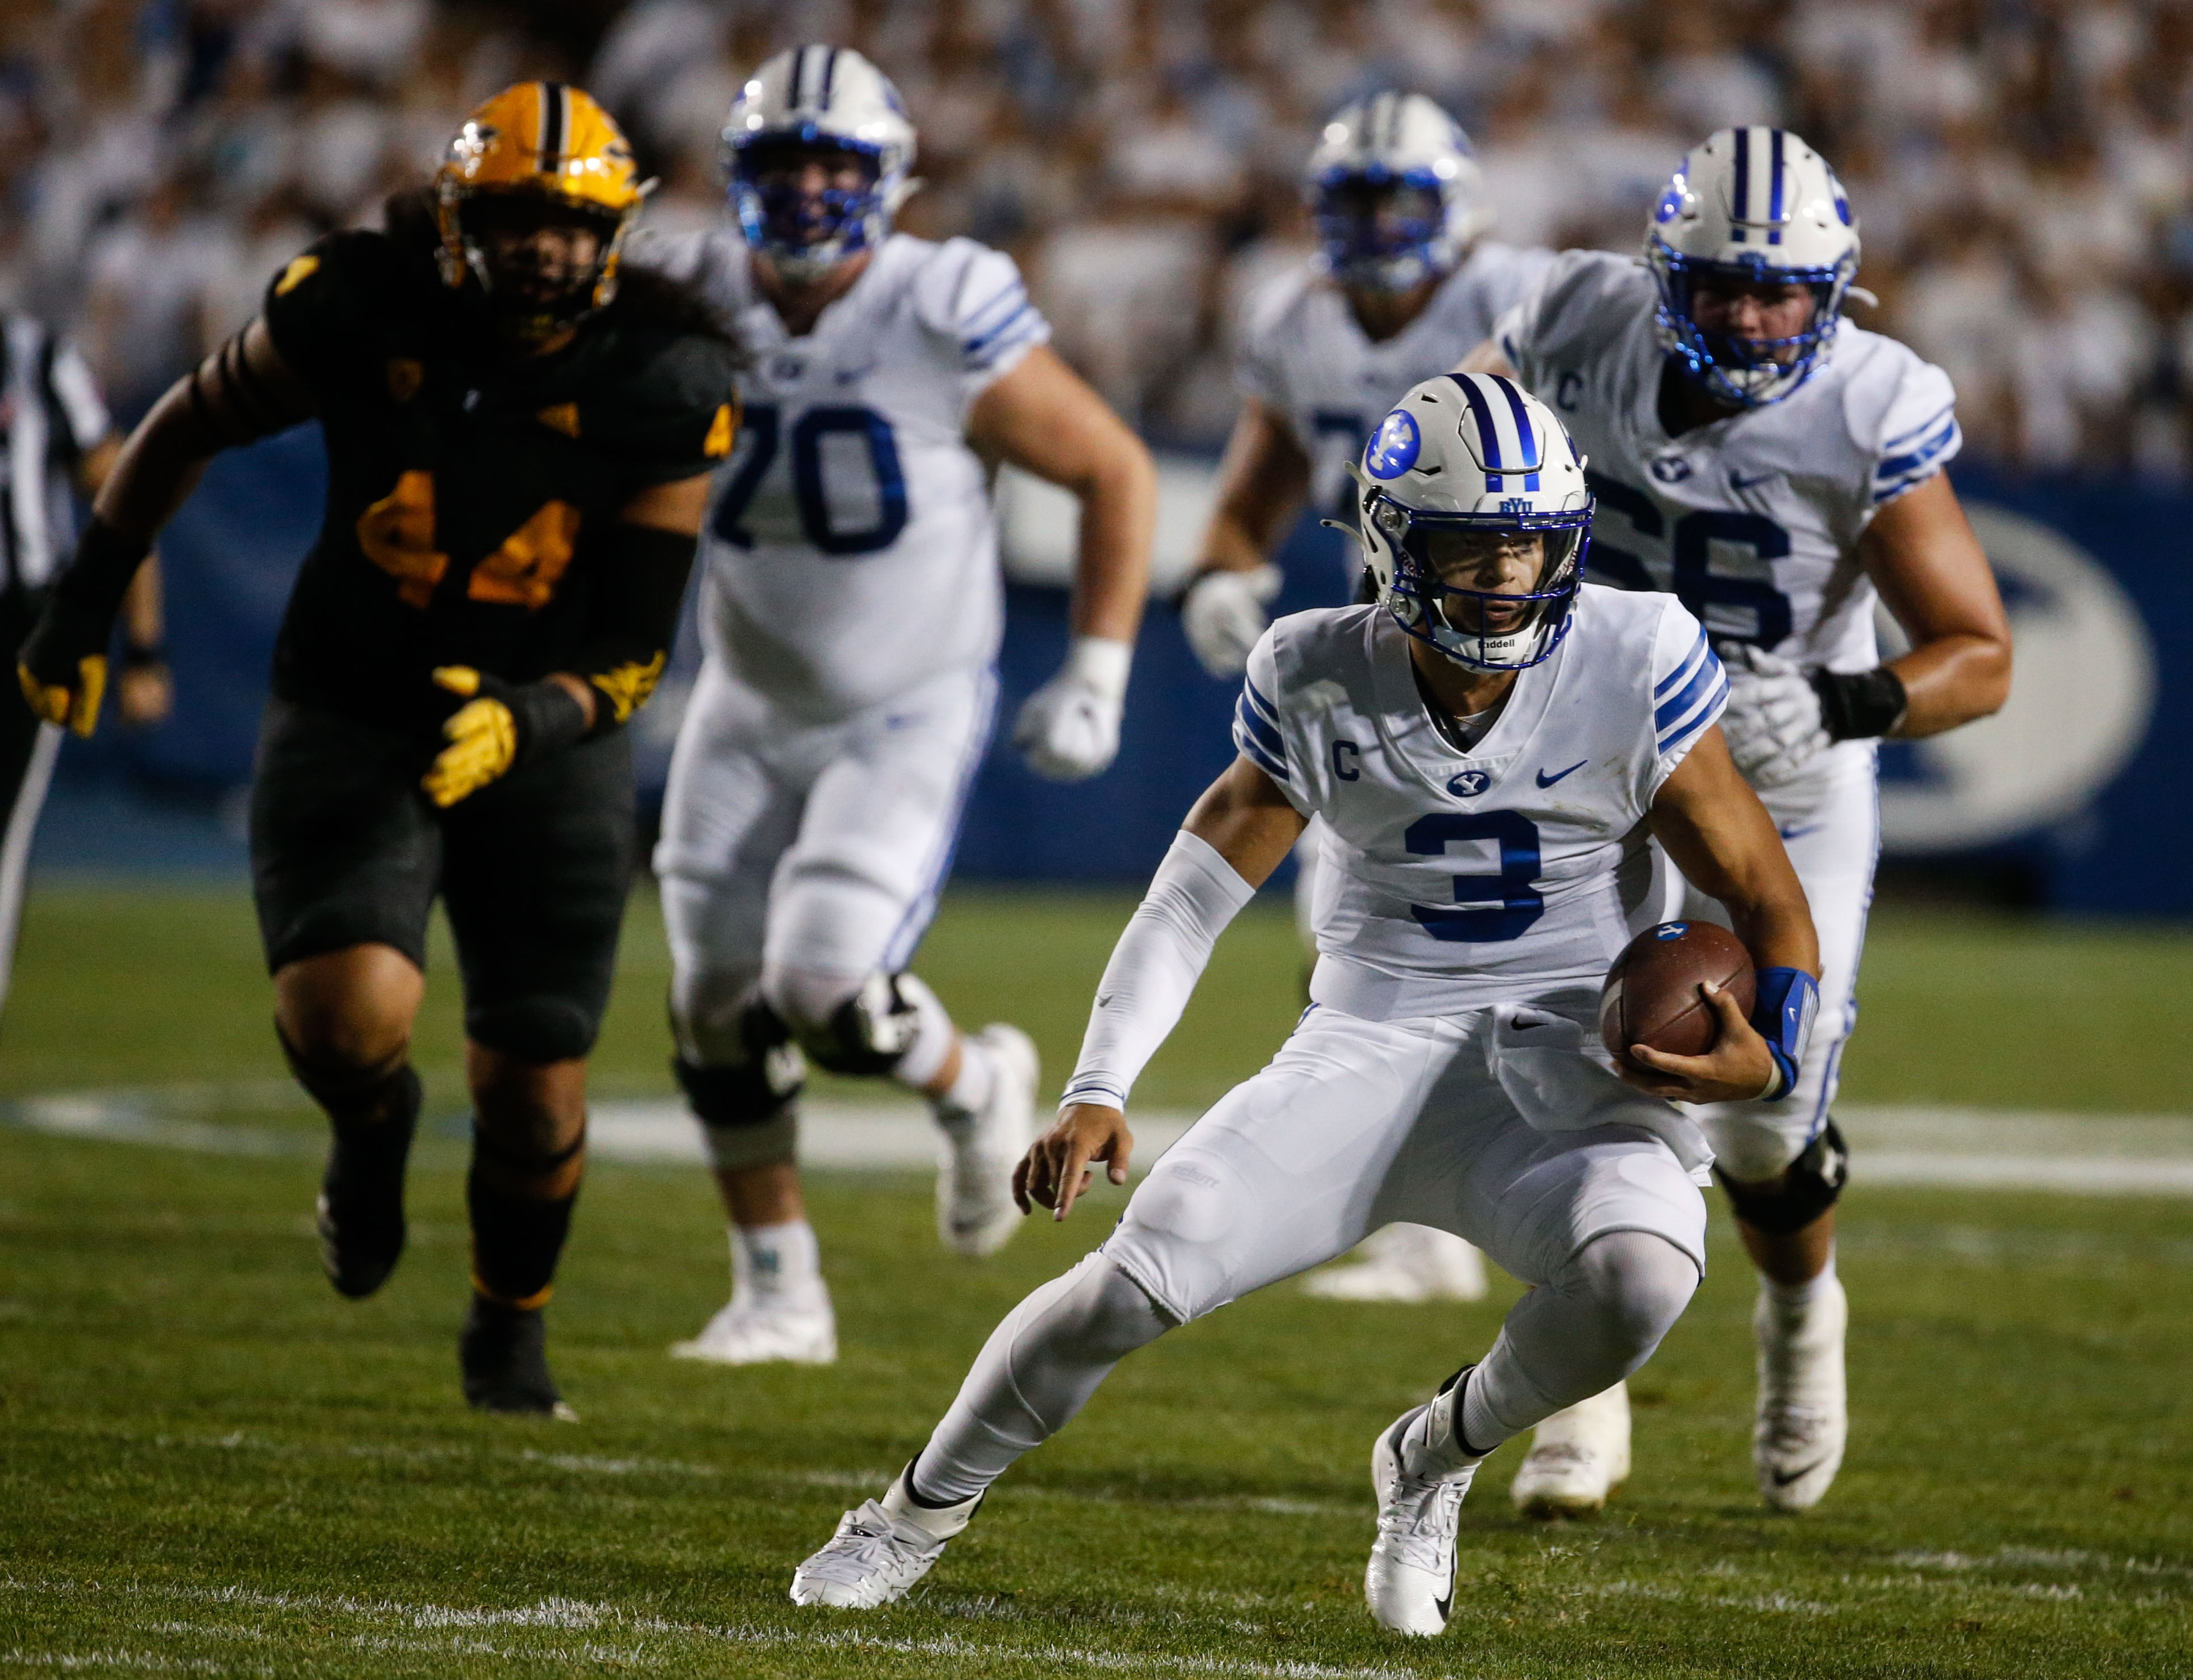 Brigham Young Cougars quarterback Jaren Hall (3) runs with the ball during an NCAA college football game against Arizona State.